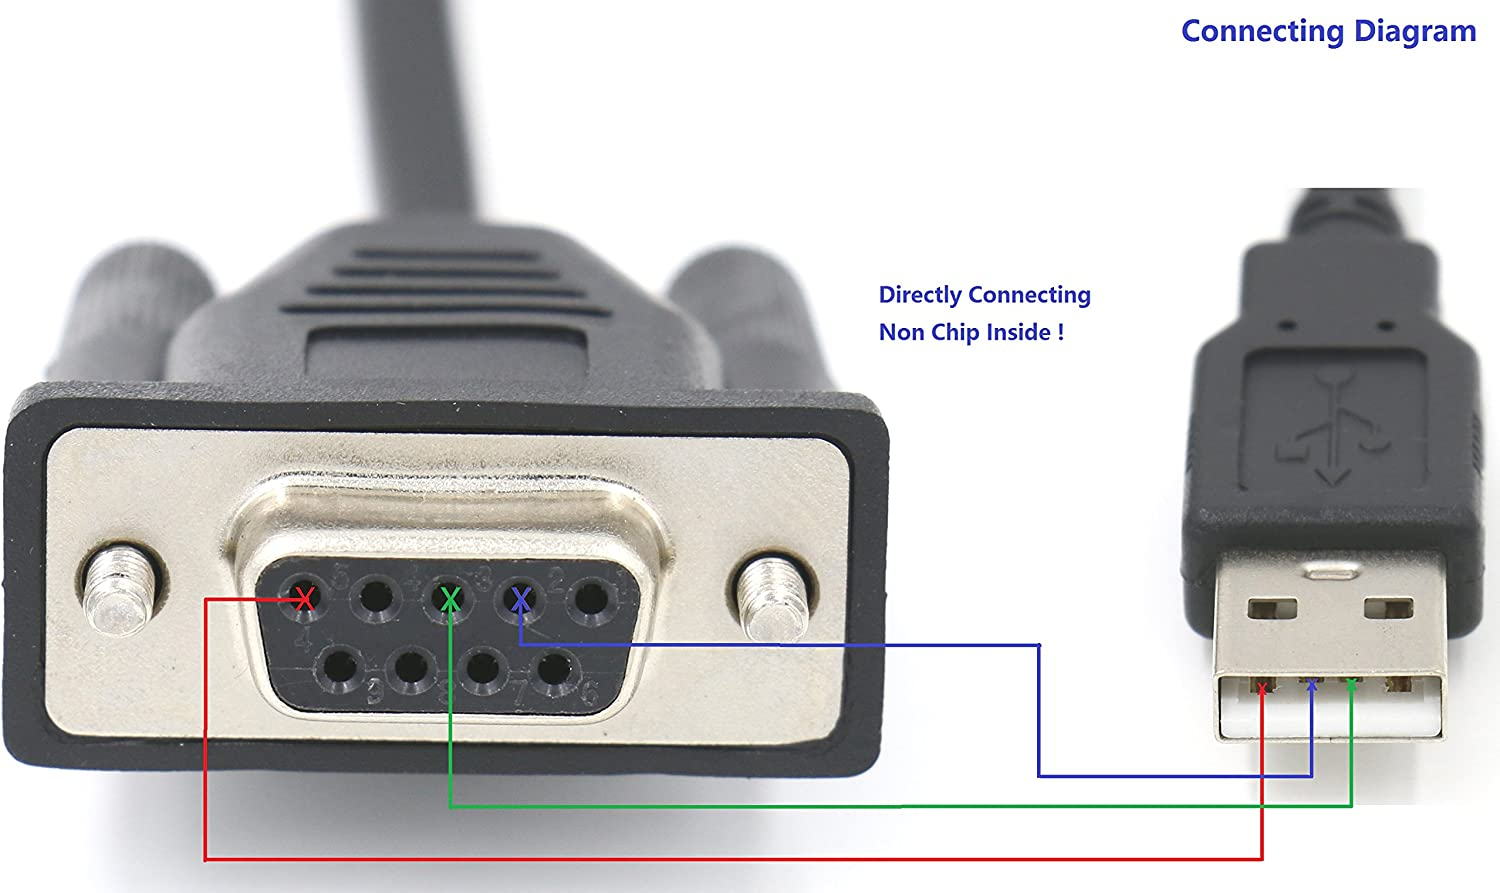 iExcell Straight-Through USB 2.0 to RS232 DB9 9 Pin Female PLC Programming  Cable, 3 Meter: Amazon.ca: ElectronicsAmazon.ca